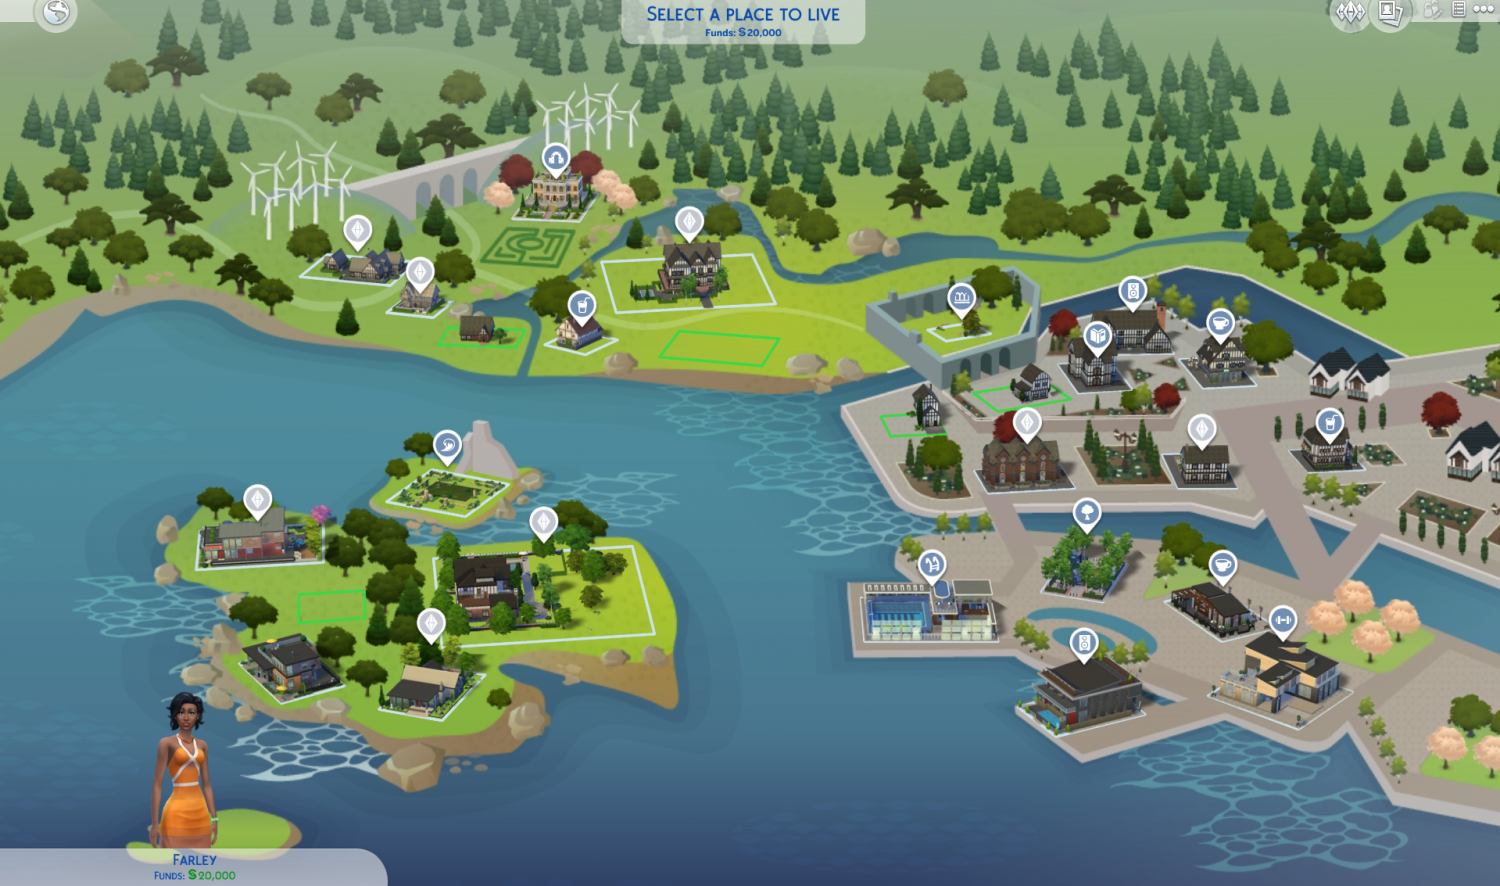 Windenburg_Map_Select_3698546